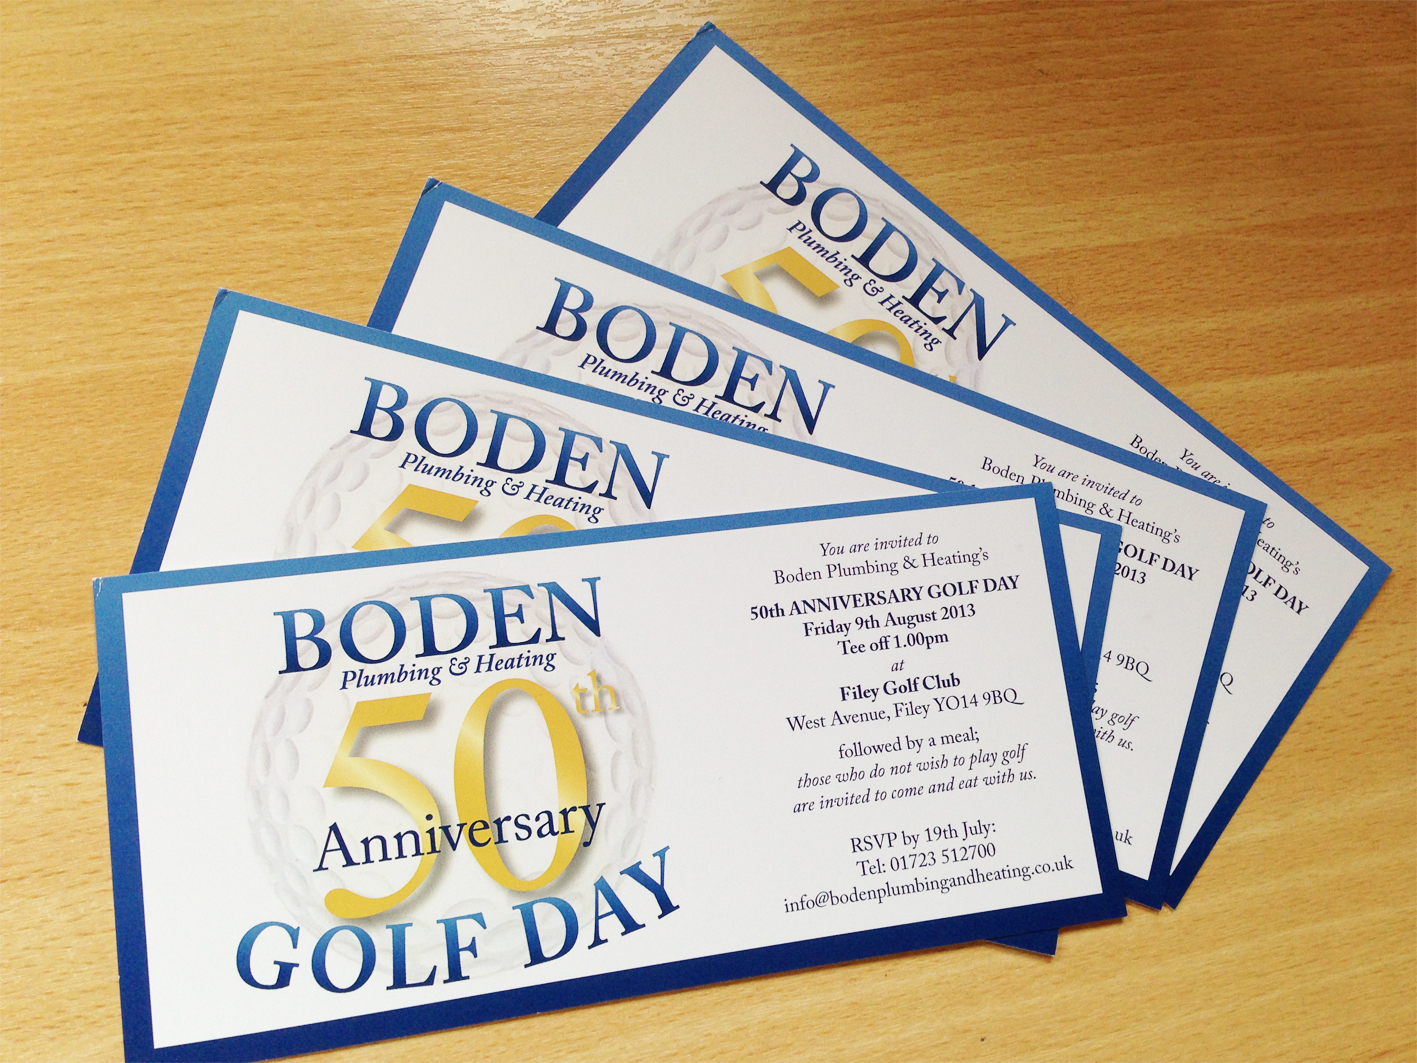 Golf Day Corporate Invitations designed by The Smart Station